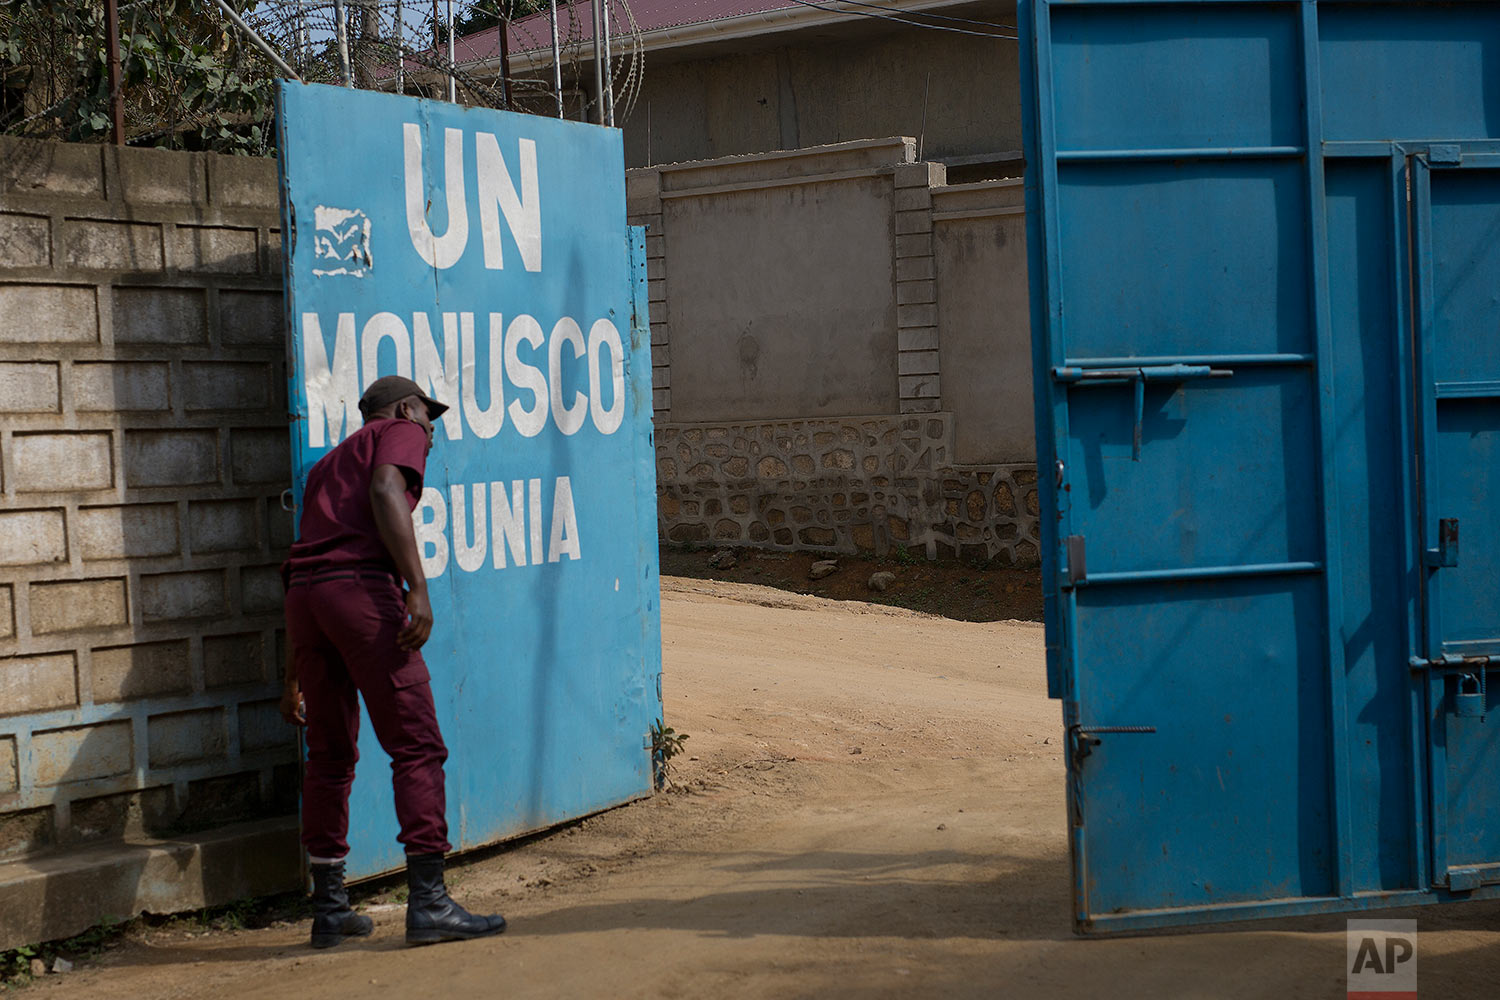 In this photo taken Aug. 11, 2016, a security guard closes the gate of the UN compound in the Congo Ituri province capital Bunia. (AP Photo/Jerome Delay)